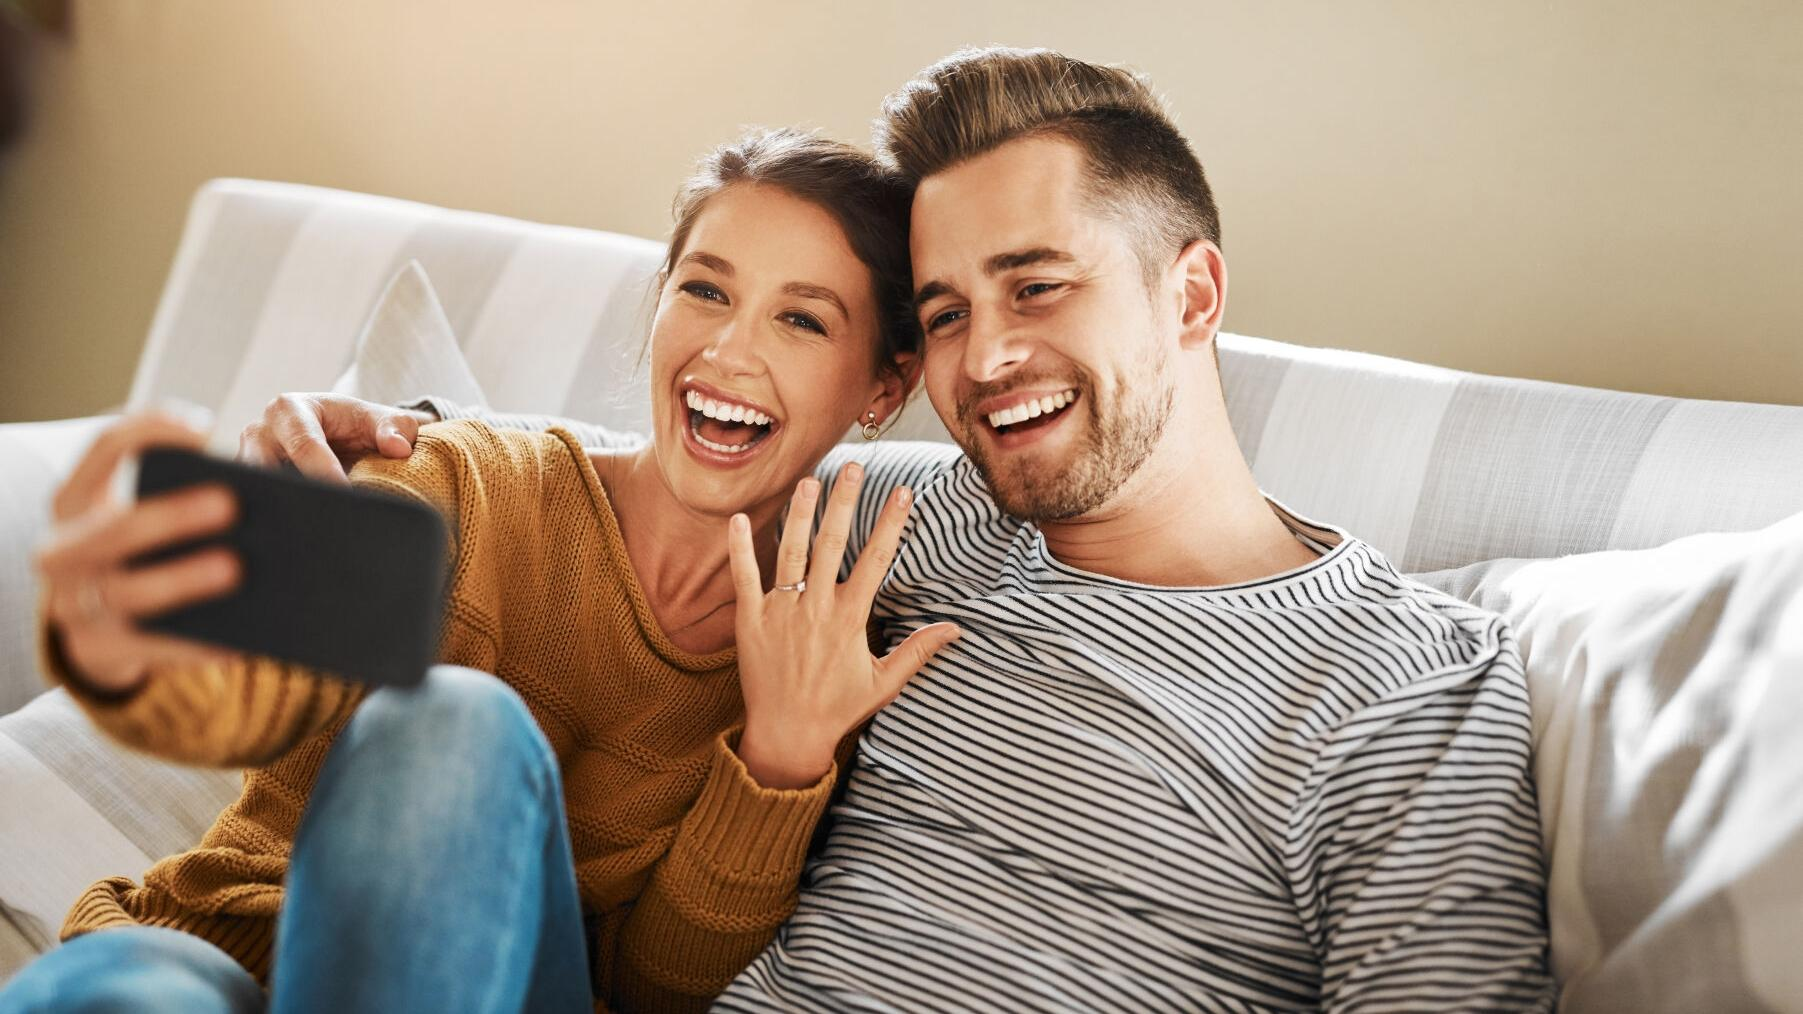 How to Announce Your Engagement: Advice From St. Louis Etiquette Experts